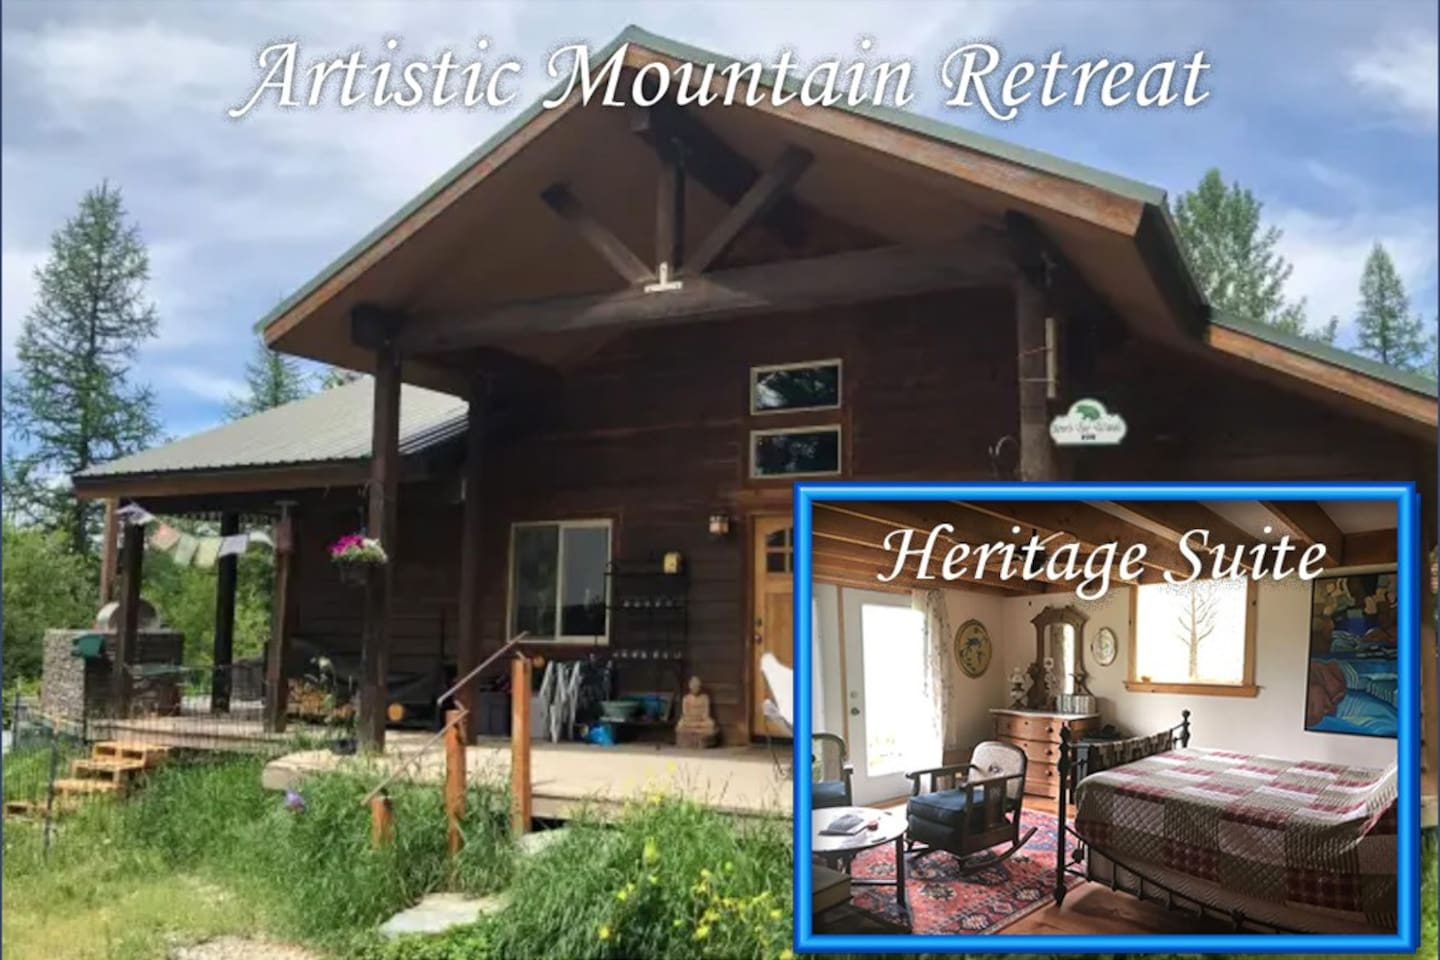 Welcome to our full suite. A large bedroom filled with art and antiques. A oversized bathroom, with bidet and soaking tub. Personal sitting areas in room and on porch. Fridge, coffee/tea station and a wide collection of movies and movie viewer.